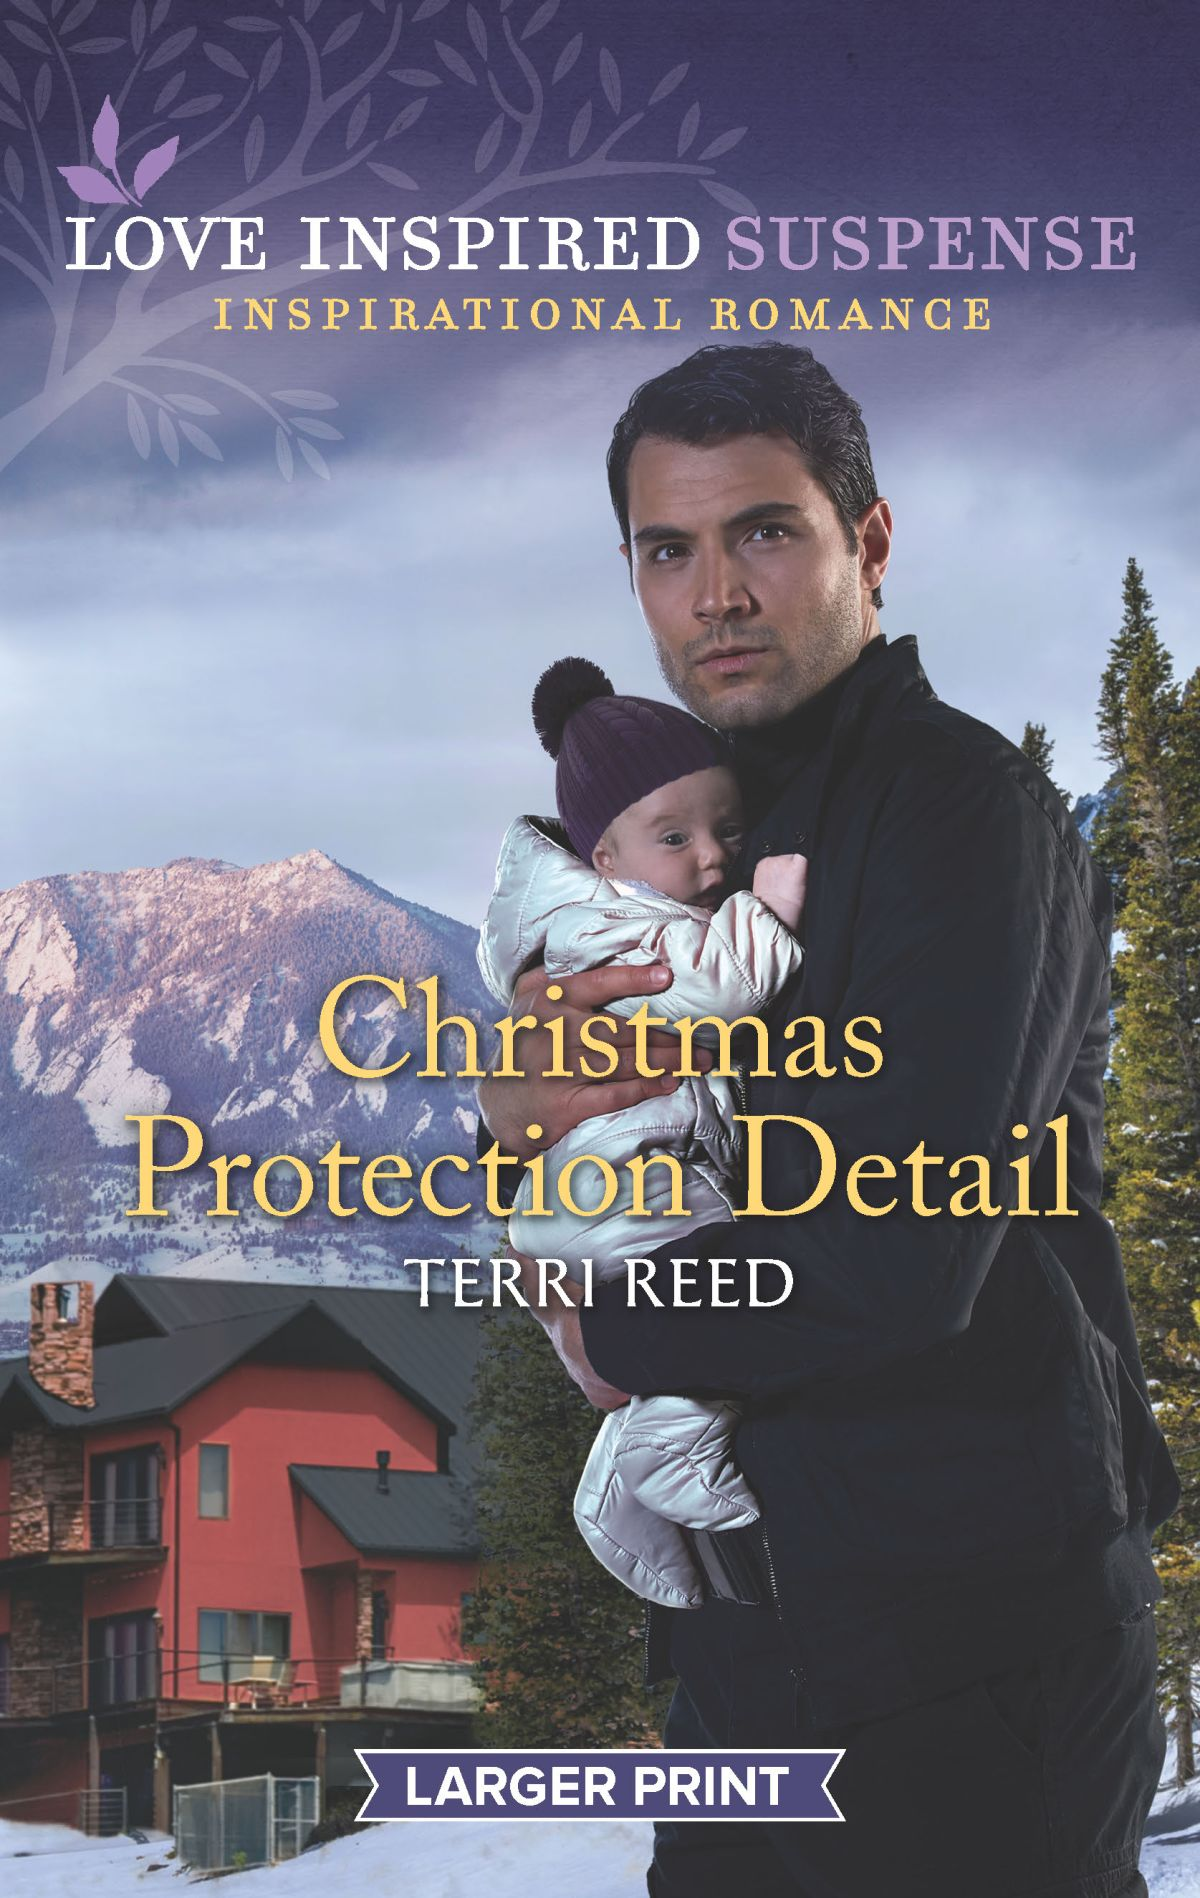 December 2020 Harlequin Suspense Blog Tour: Christmas Protection Detail by TeriReed